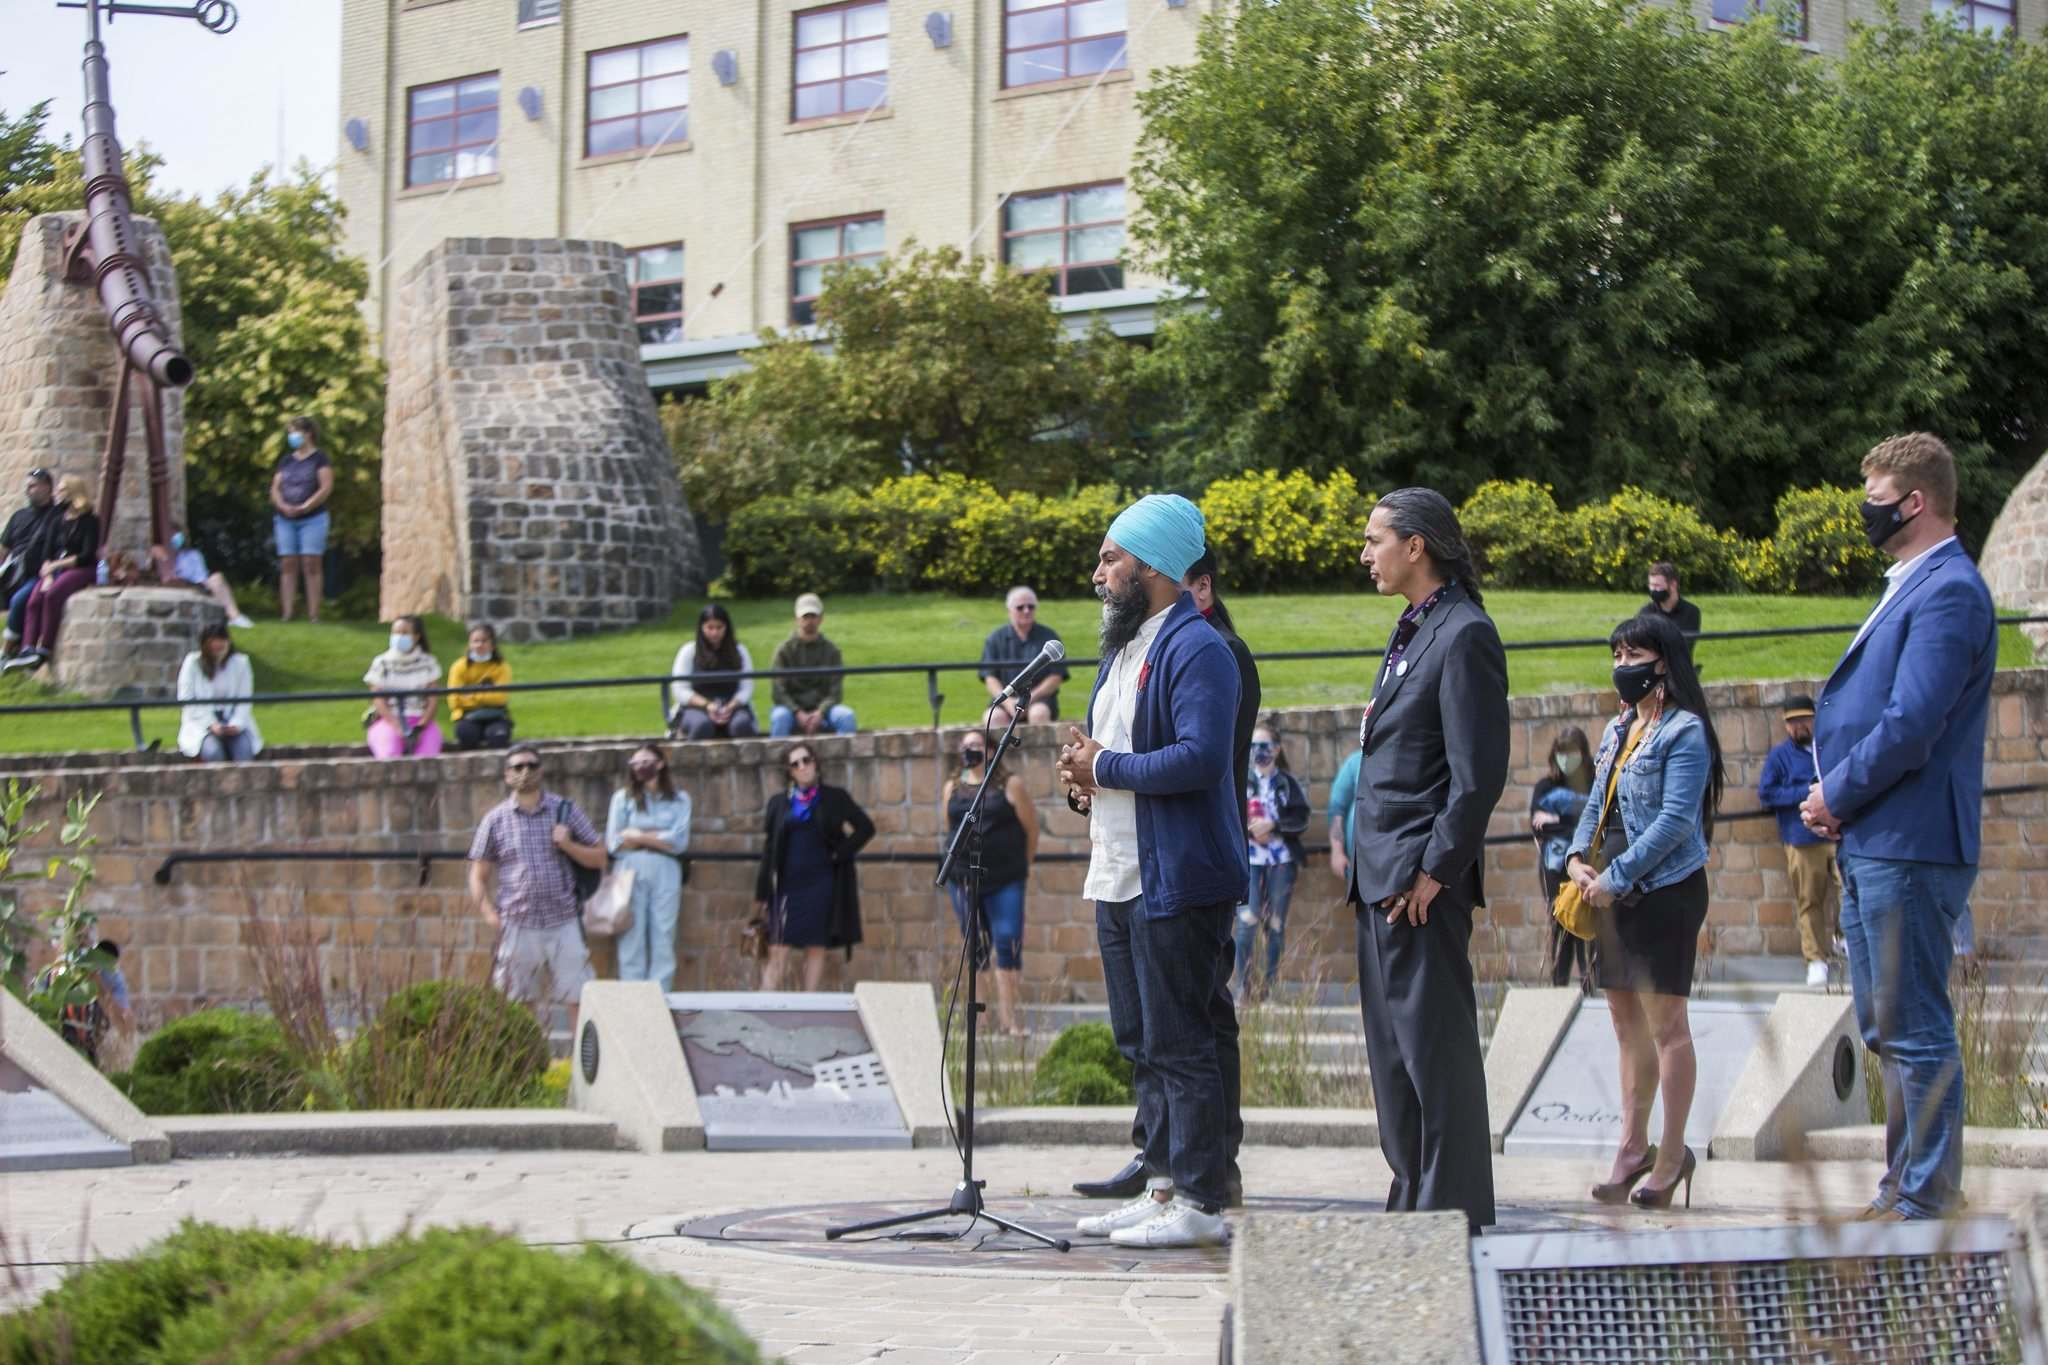 NDP leader Jagmeet Singh declared his solidarity with First Nations at the Oodena Circle at The Forks.